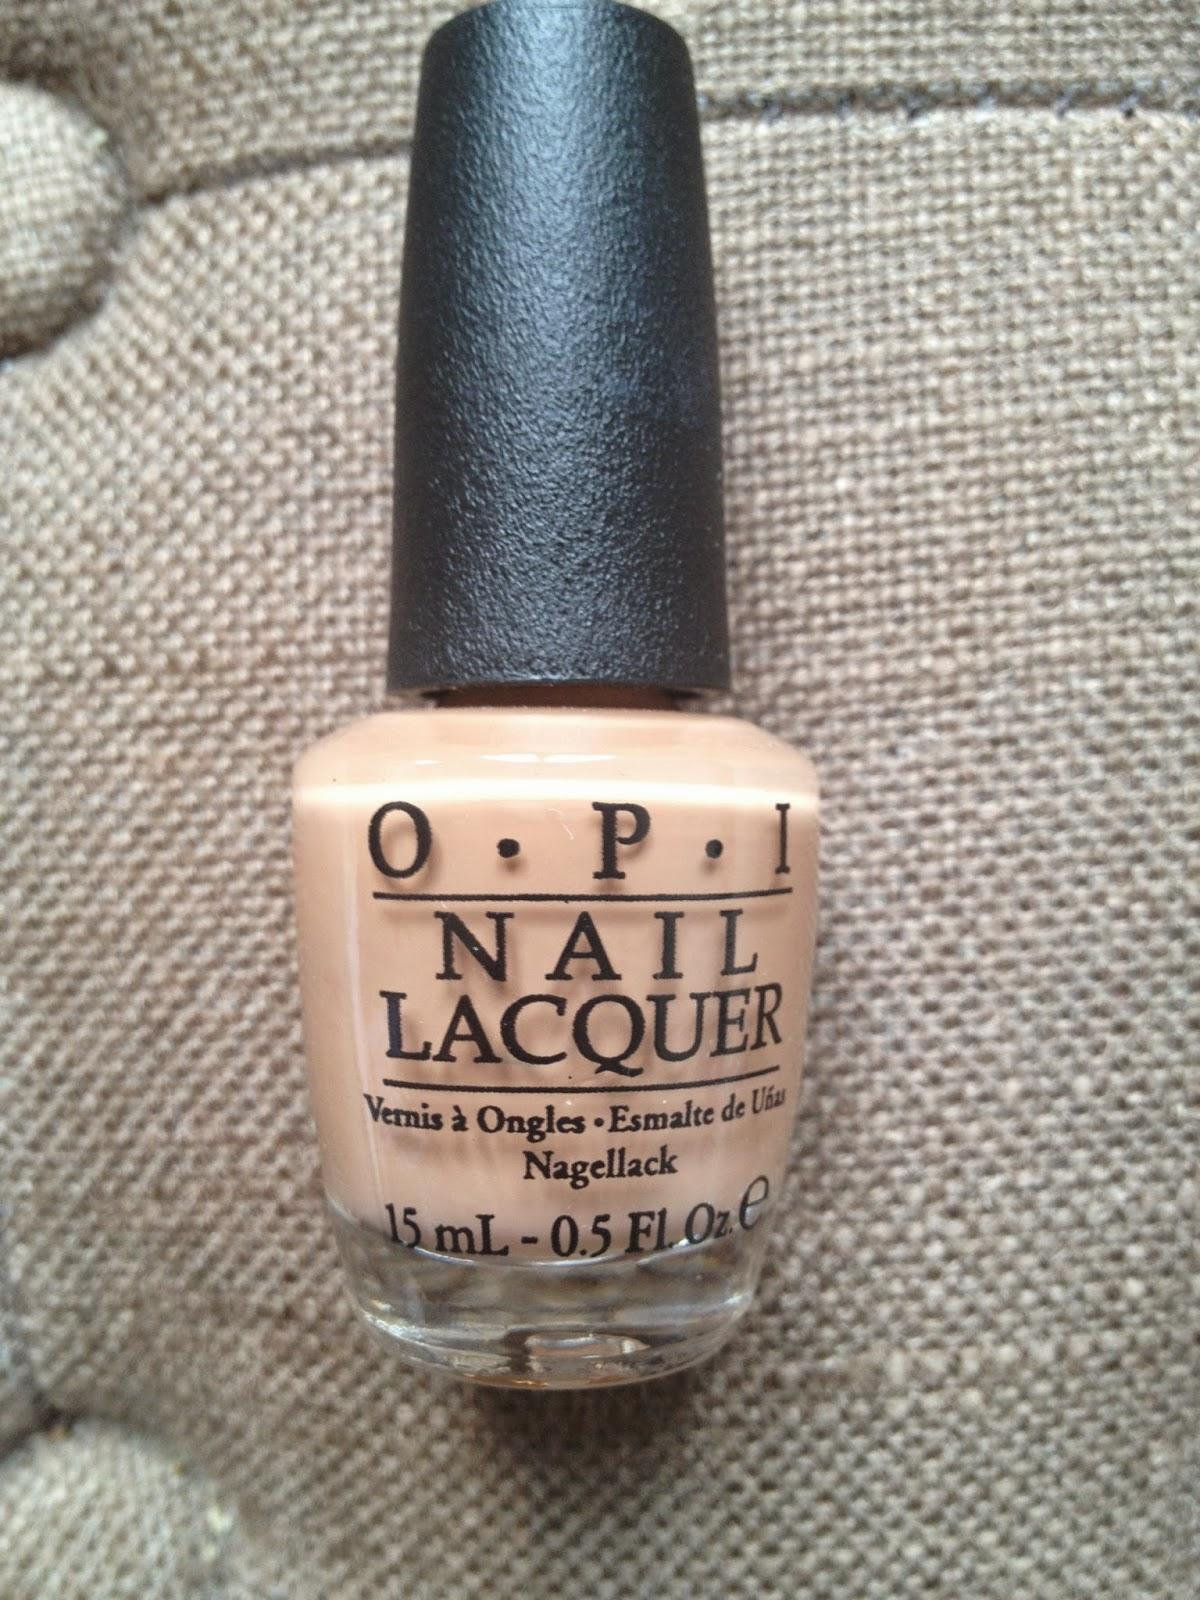 sur mes ongles cette semaine : Collection Nordic - OPI